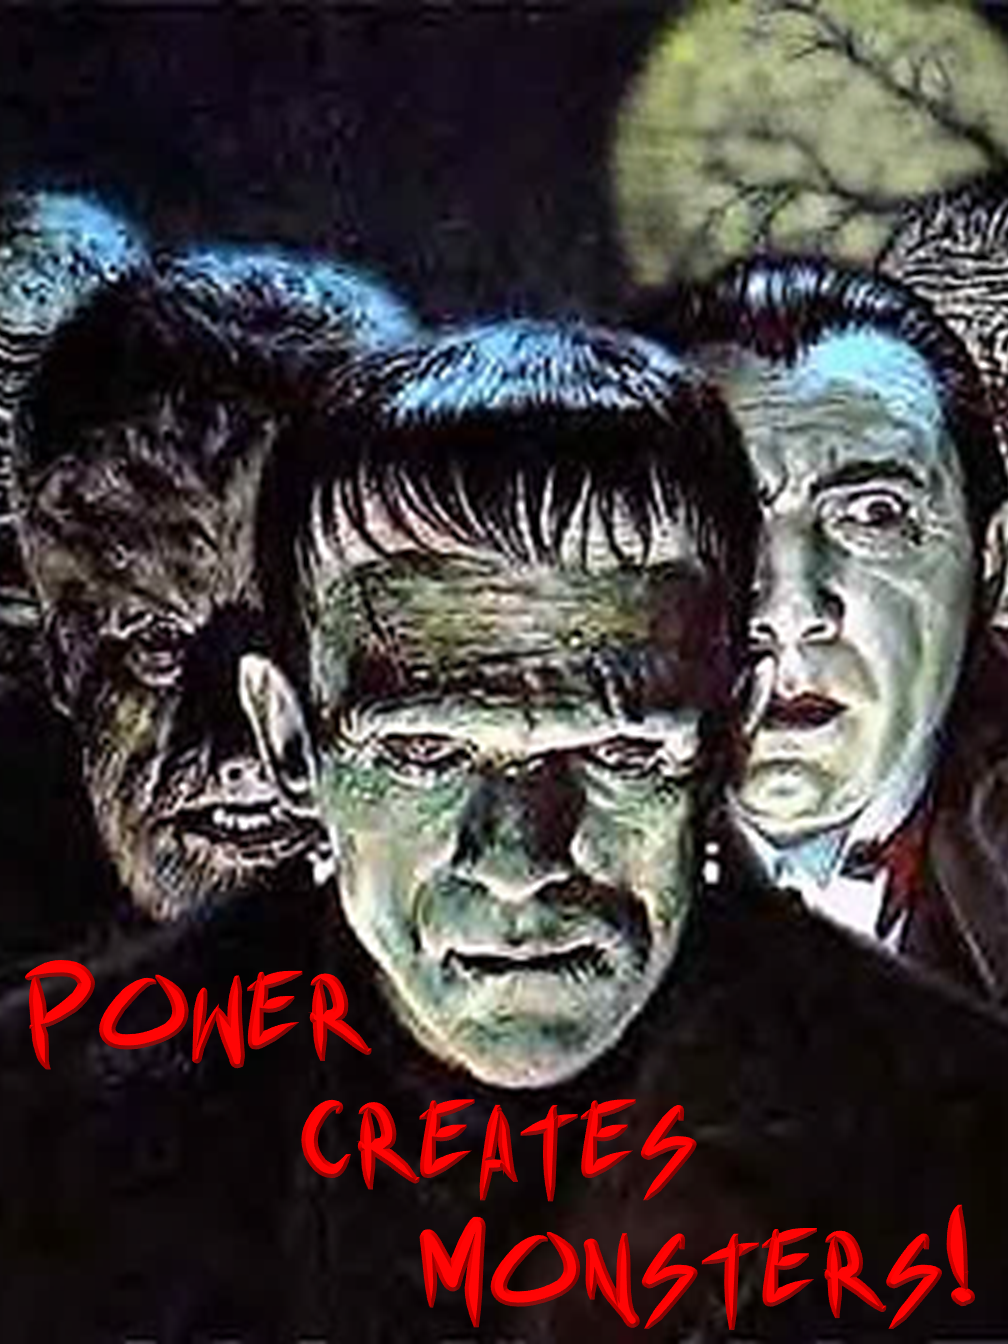 Power creates Monsters